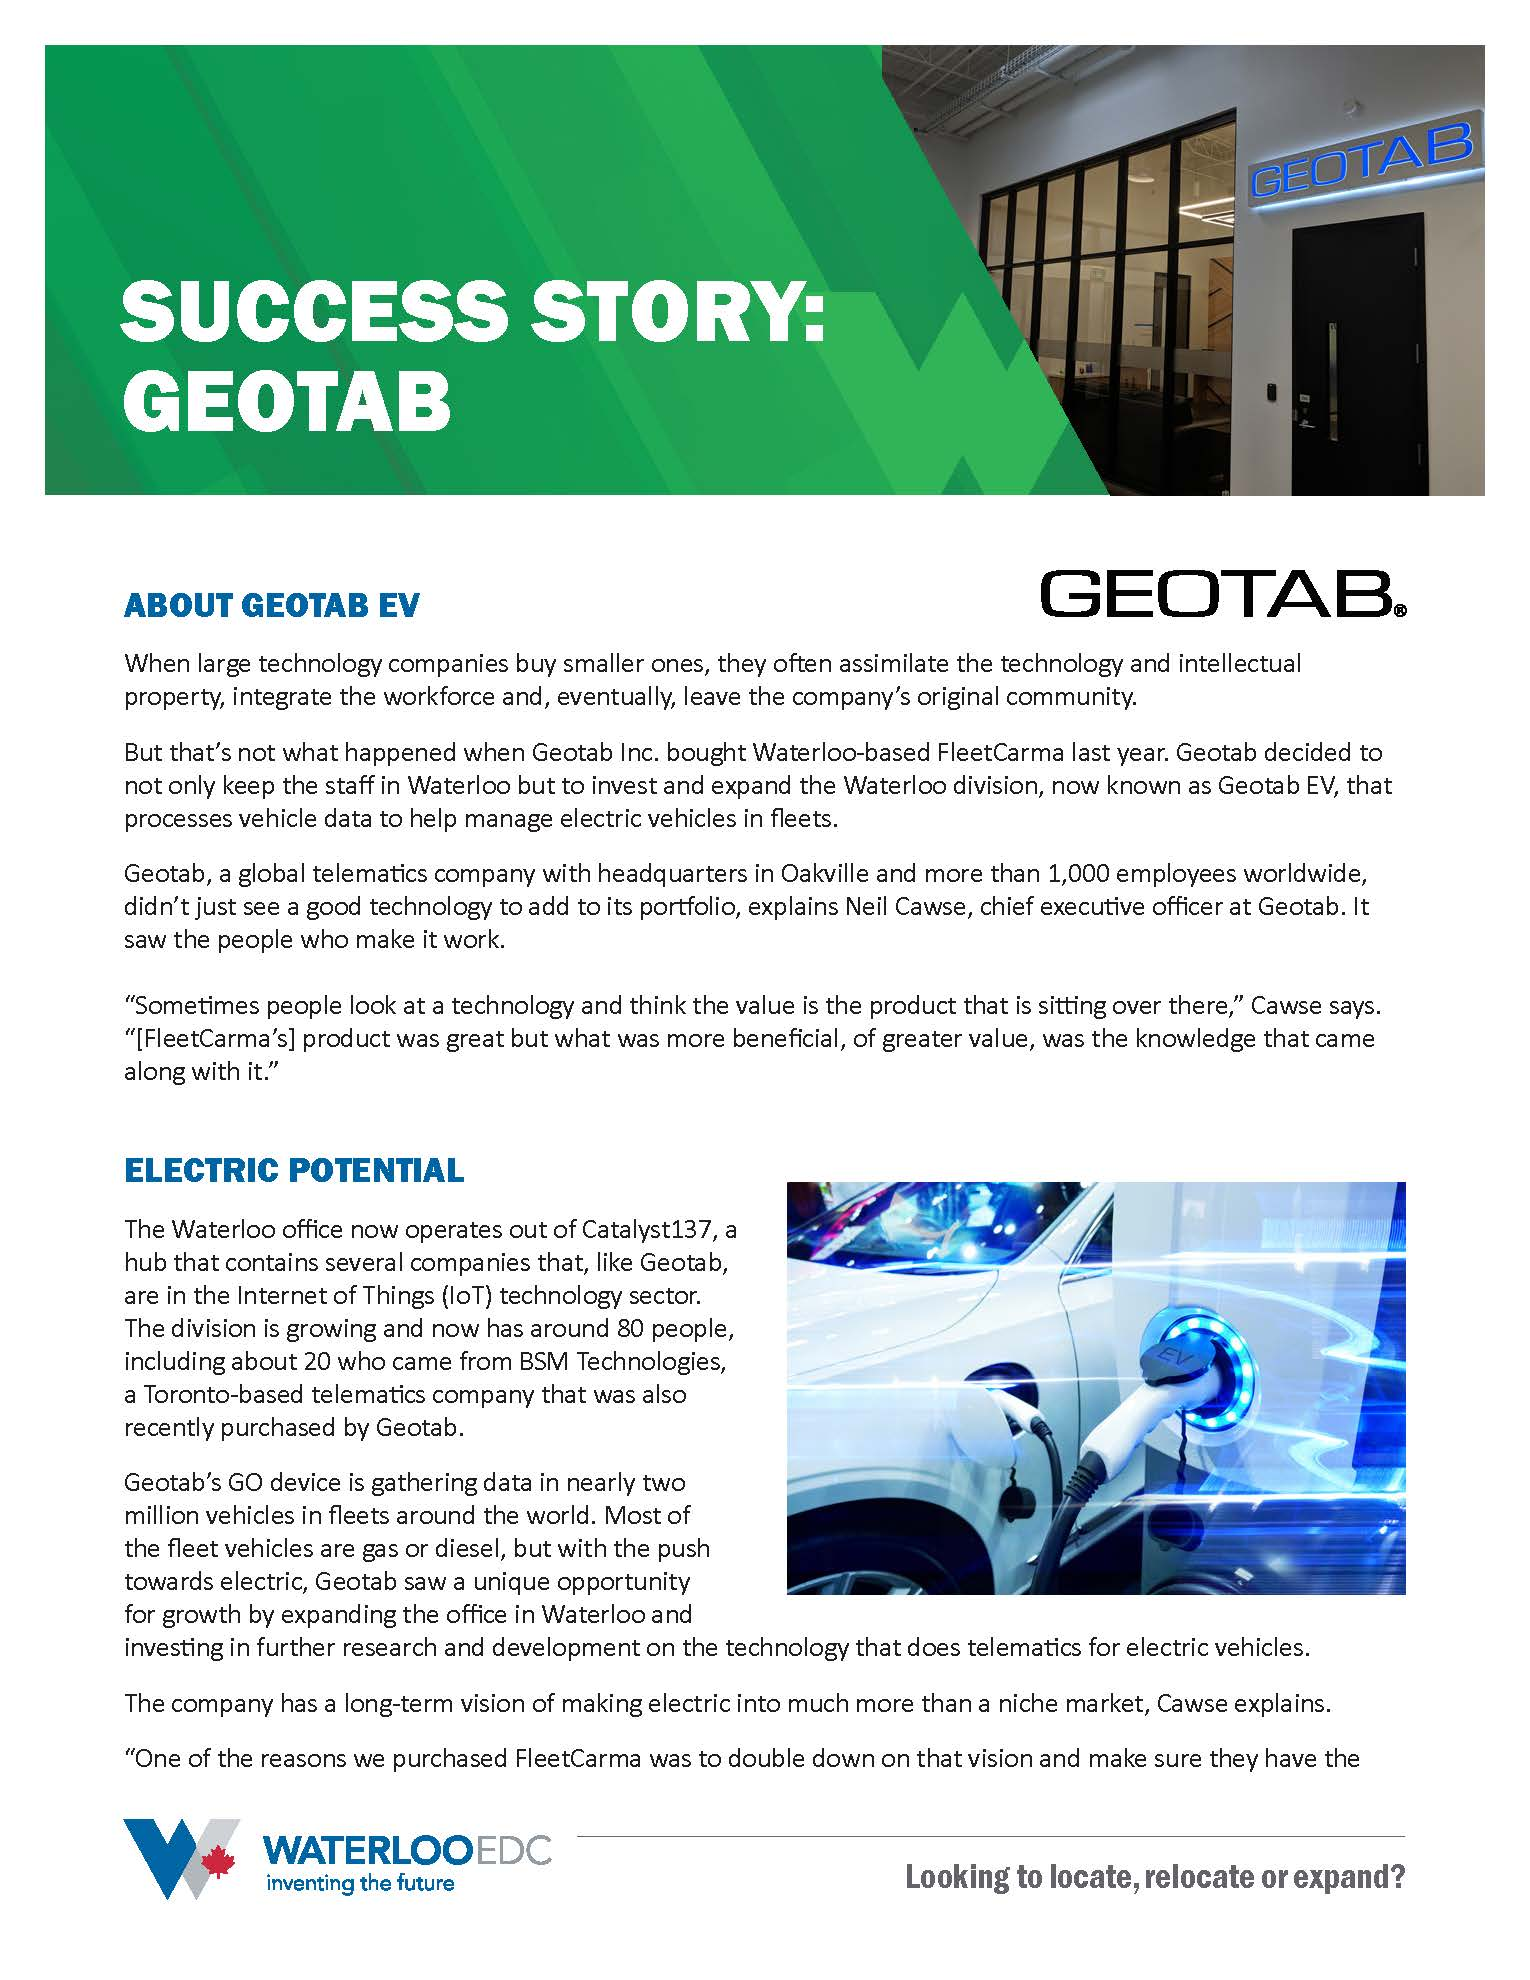 Geotab success story